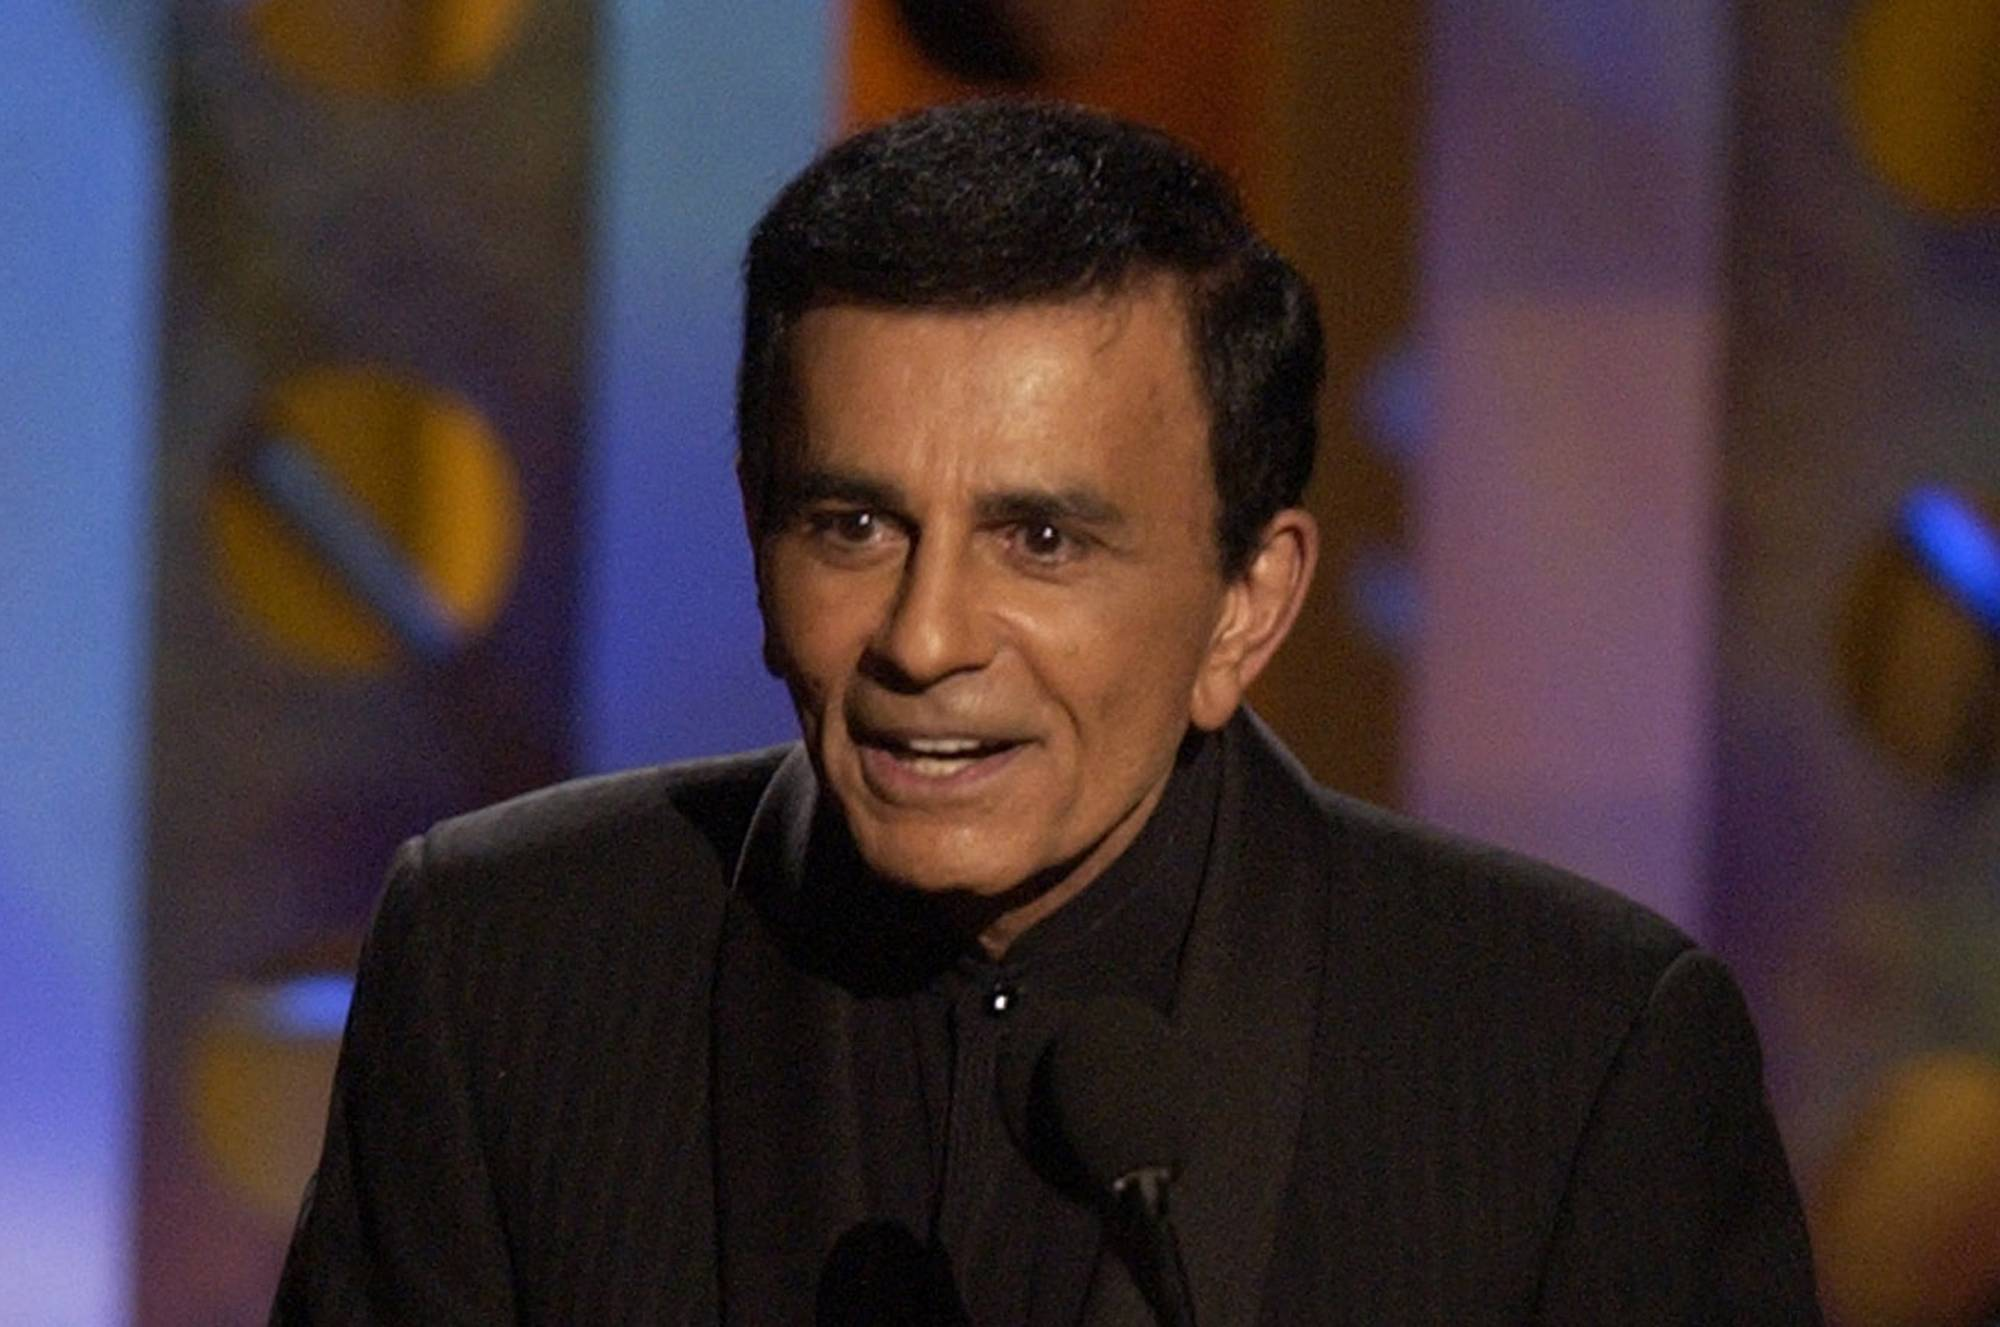 FILE - Casey Kasem accepts a radio icon award during the Radio Music Awards Monday, in this Oct. 27, 2003 file photo taken at the Aladdin Hotel in Las Vegas. Santa Monica Police Department Sgt. Mario Toti said Kasem was located a few hours after his children filed a missing person's report on Wednesday May 14, 2014. Kasem, 82, suffers from advanced Parkinson's disease, can no longer speak and has been in various medical facilities chosen by his wife, Jean Kasem. (AP Photo/Joe Cavaretta, File)